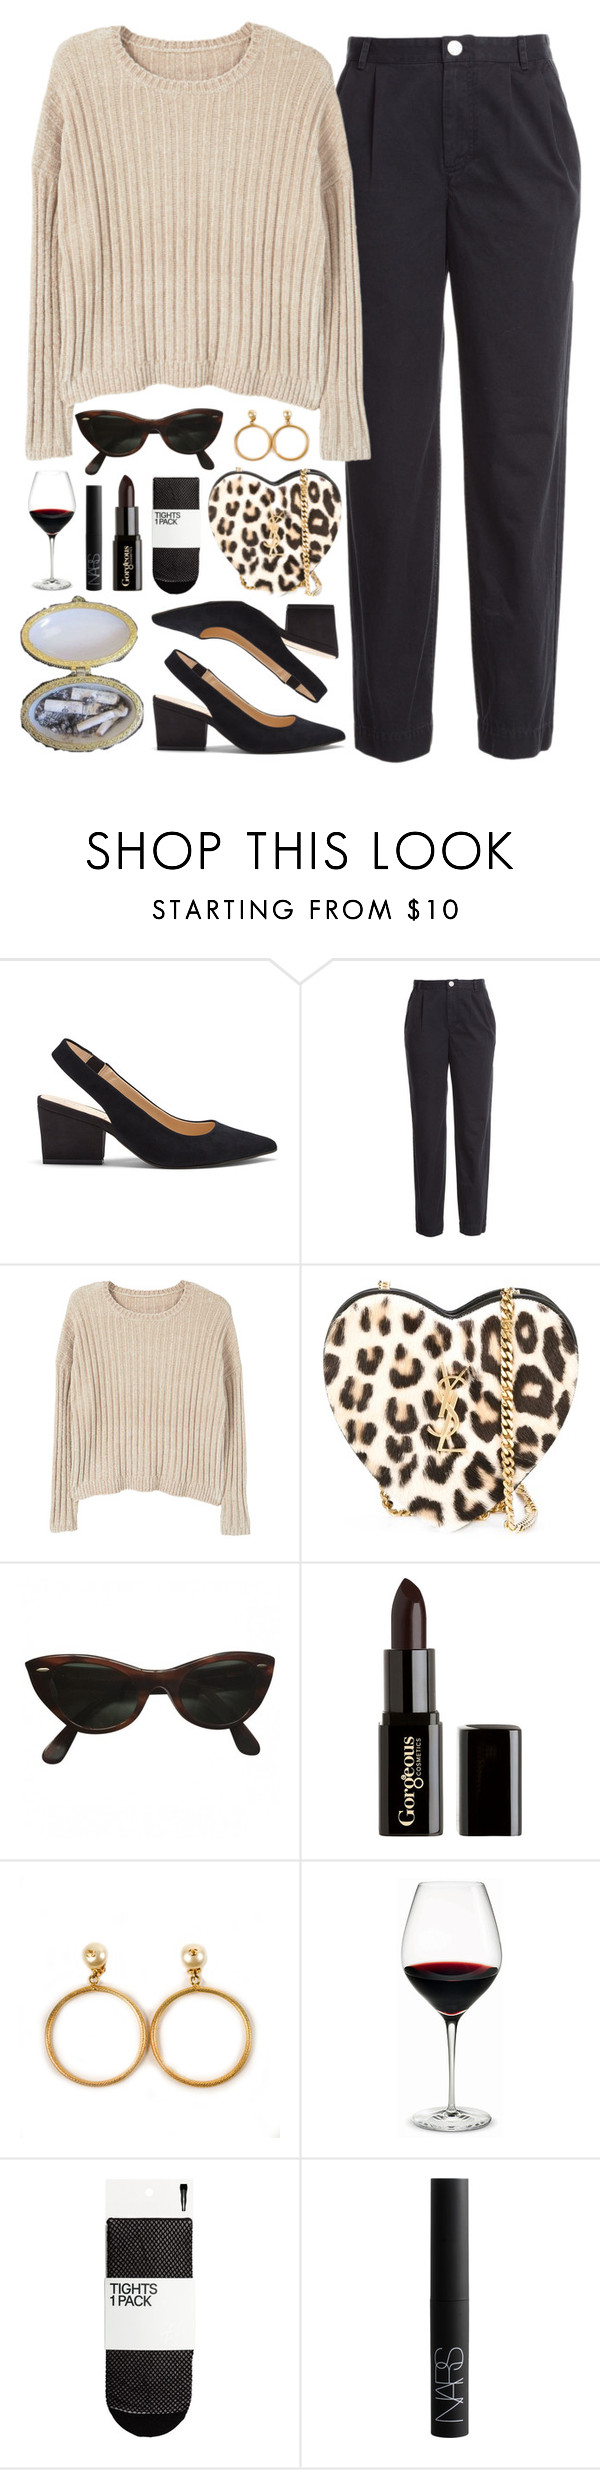 """""""Untitled #305"""" by brigi-bodoki ❤ liked on Polyvore featuring Sole Society, Marc by Marc Jacobs, MANGO, Yves Saint Laurent, Ray-Ban, Gorgeous Cosmetics, Chanel, Holmegaard and NARS Cosmetics"""